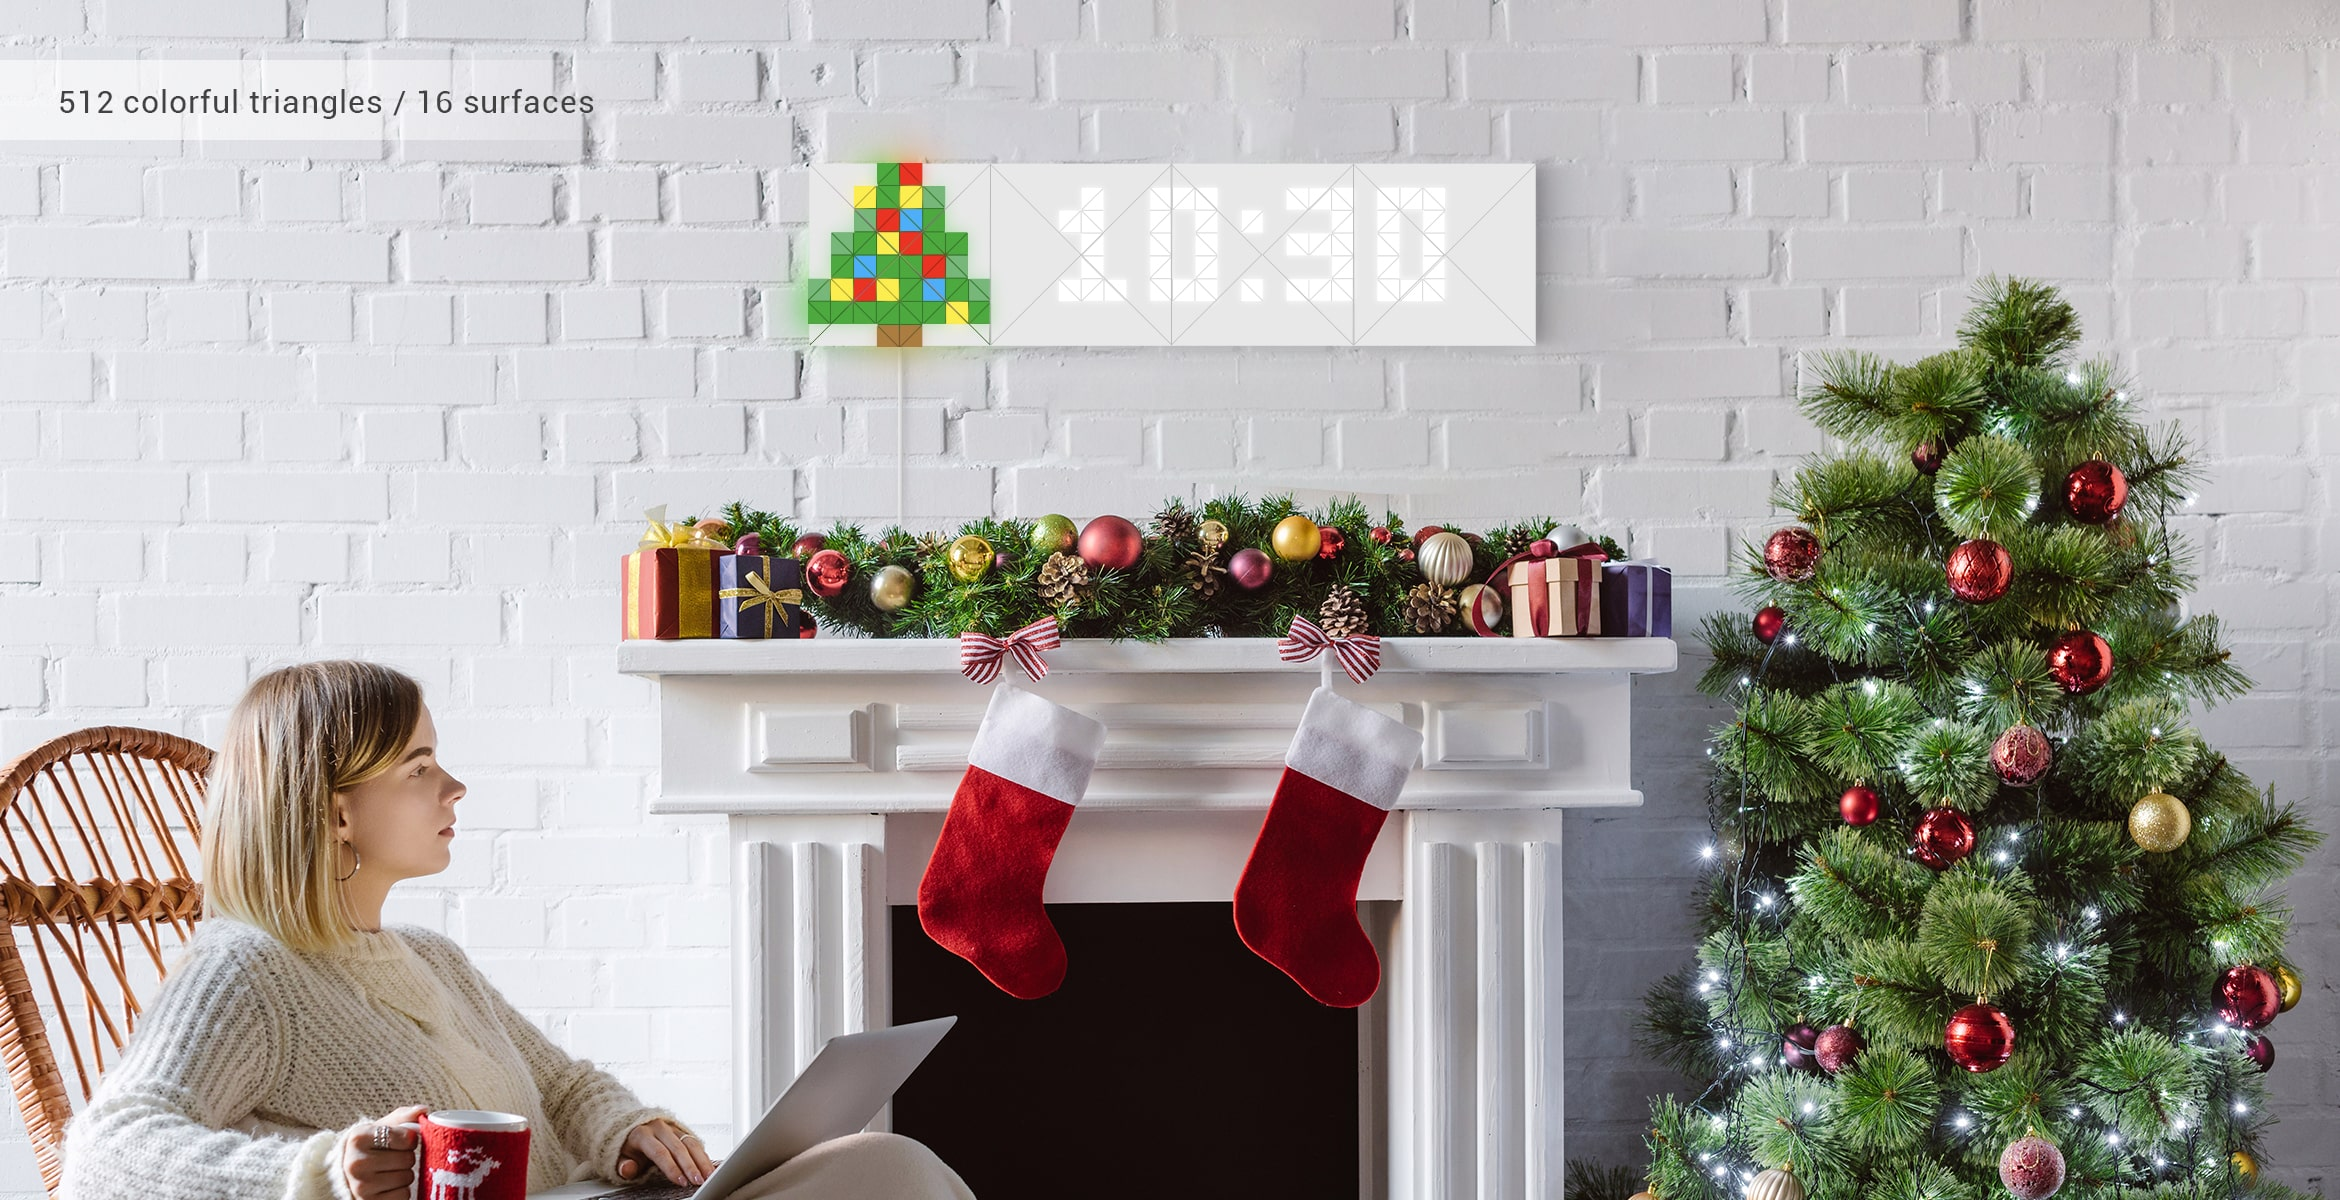 Infoscreen shape, assembled from 16 smart light surfaces, displays time and Christmas tree Sky face complementing room interior